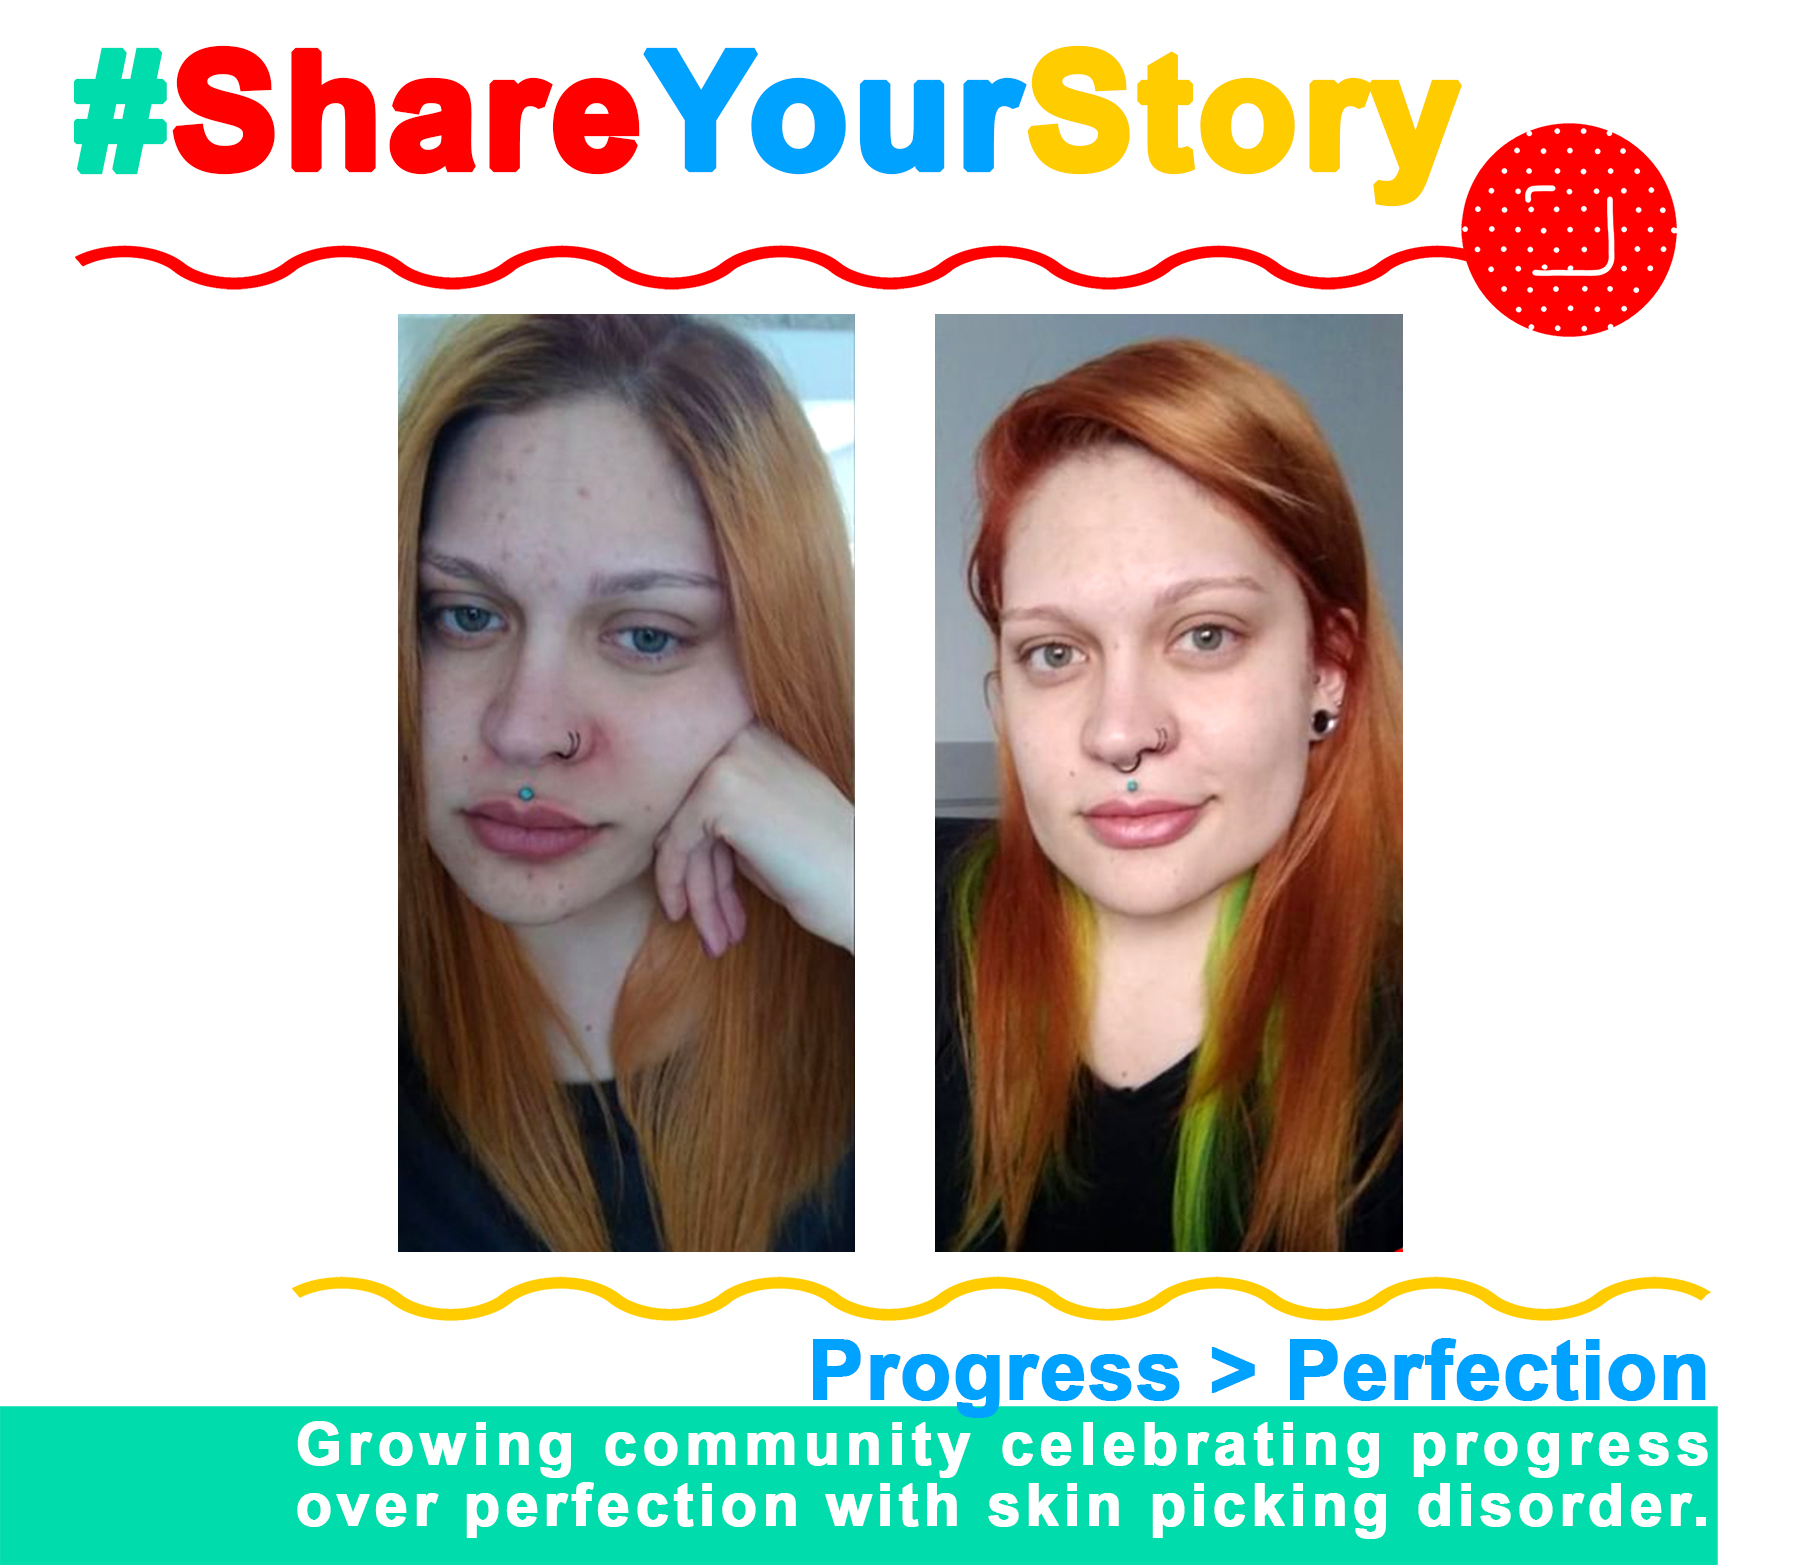 #ShareYourStory: Camille